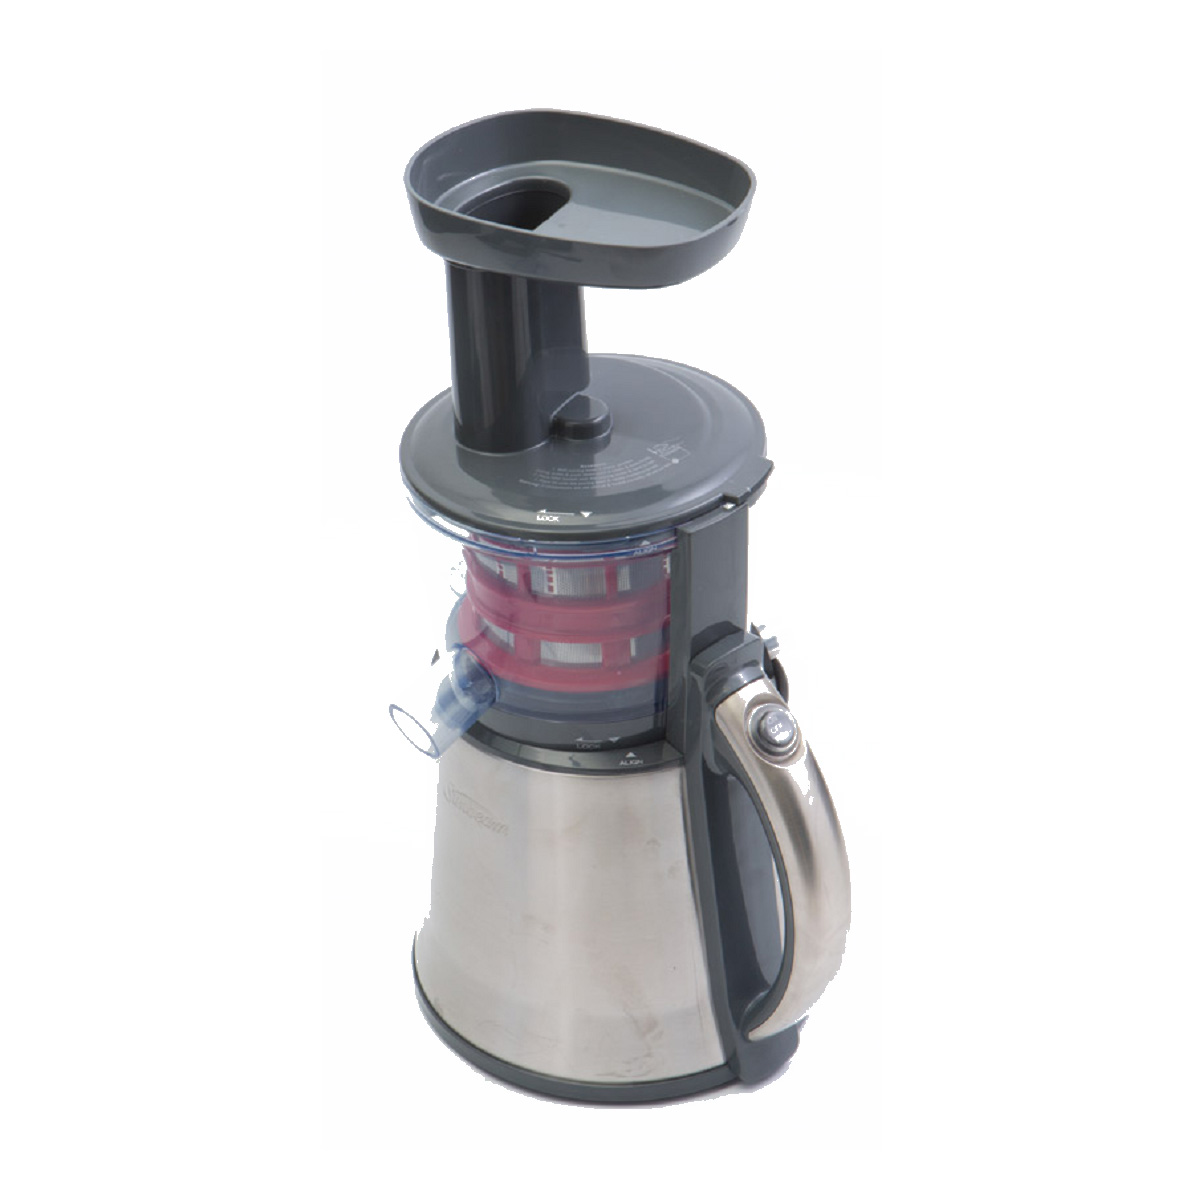 Sunbeam Slow Juicer Reviews : Sunbeam JE9000 Slow Juicer Home Clearance